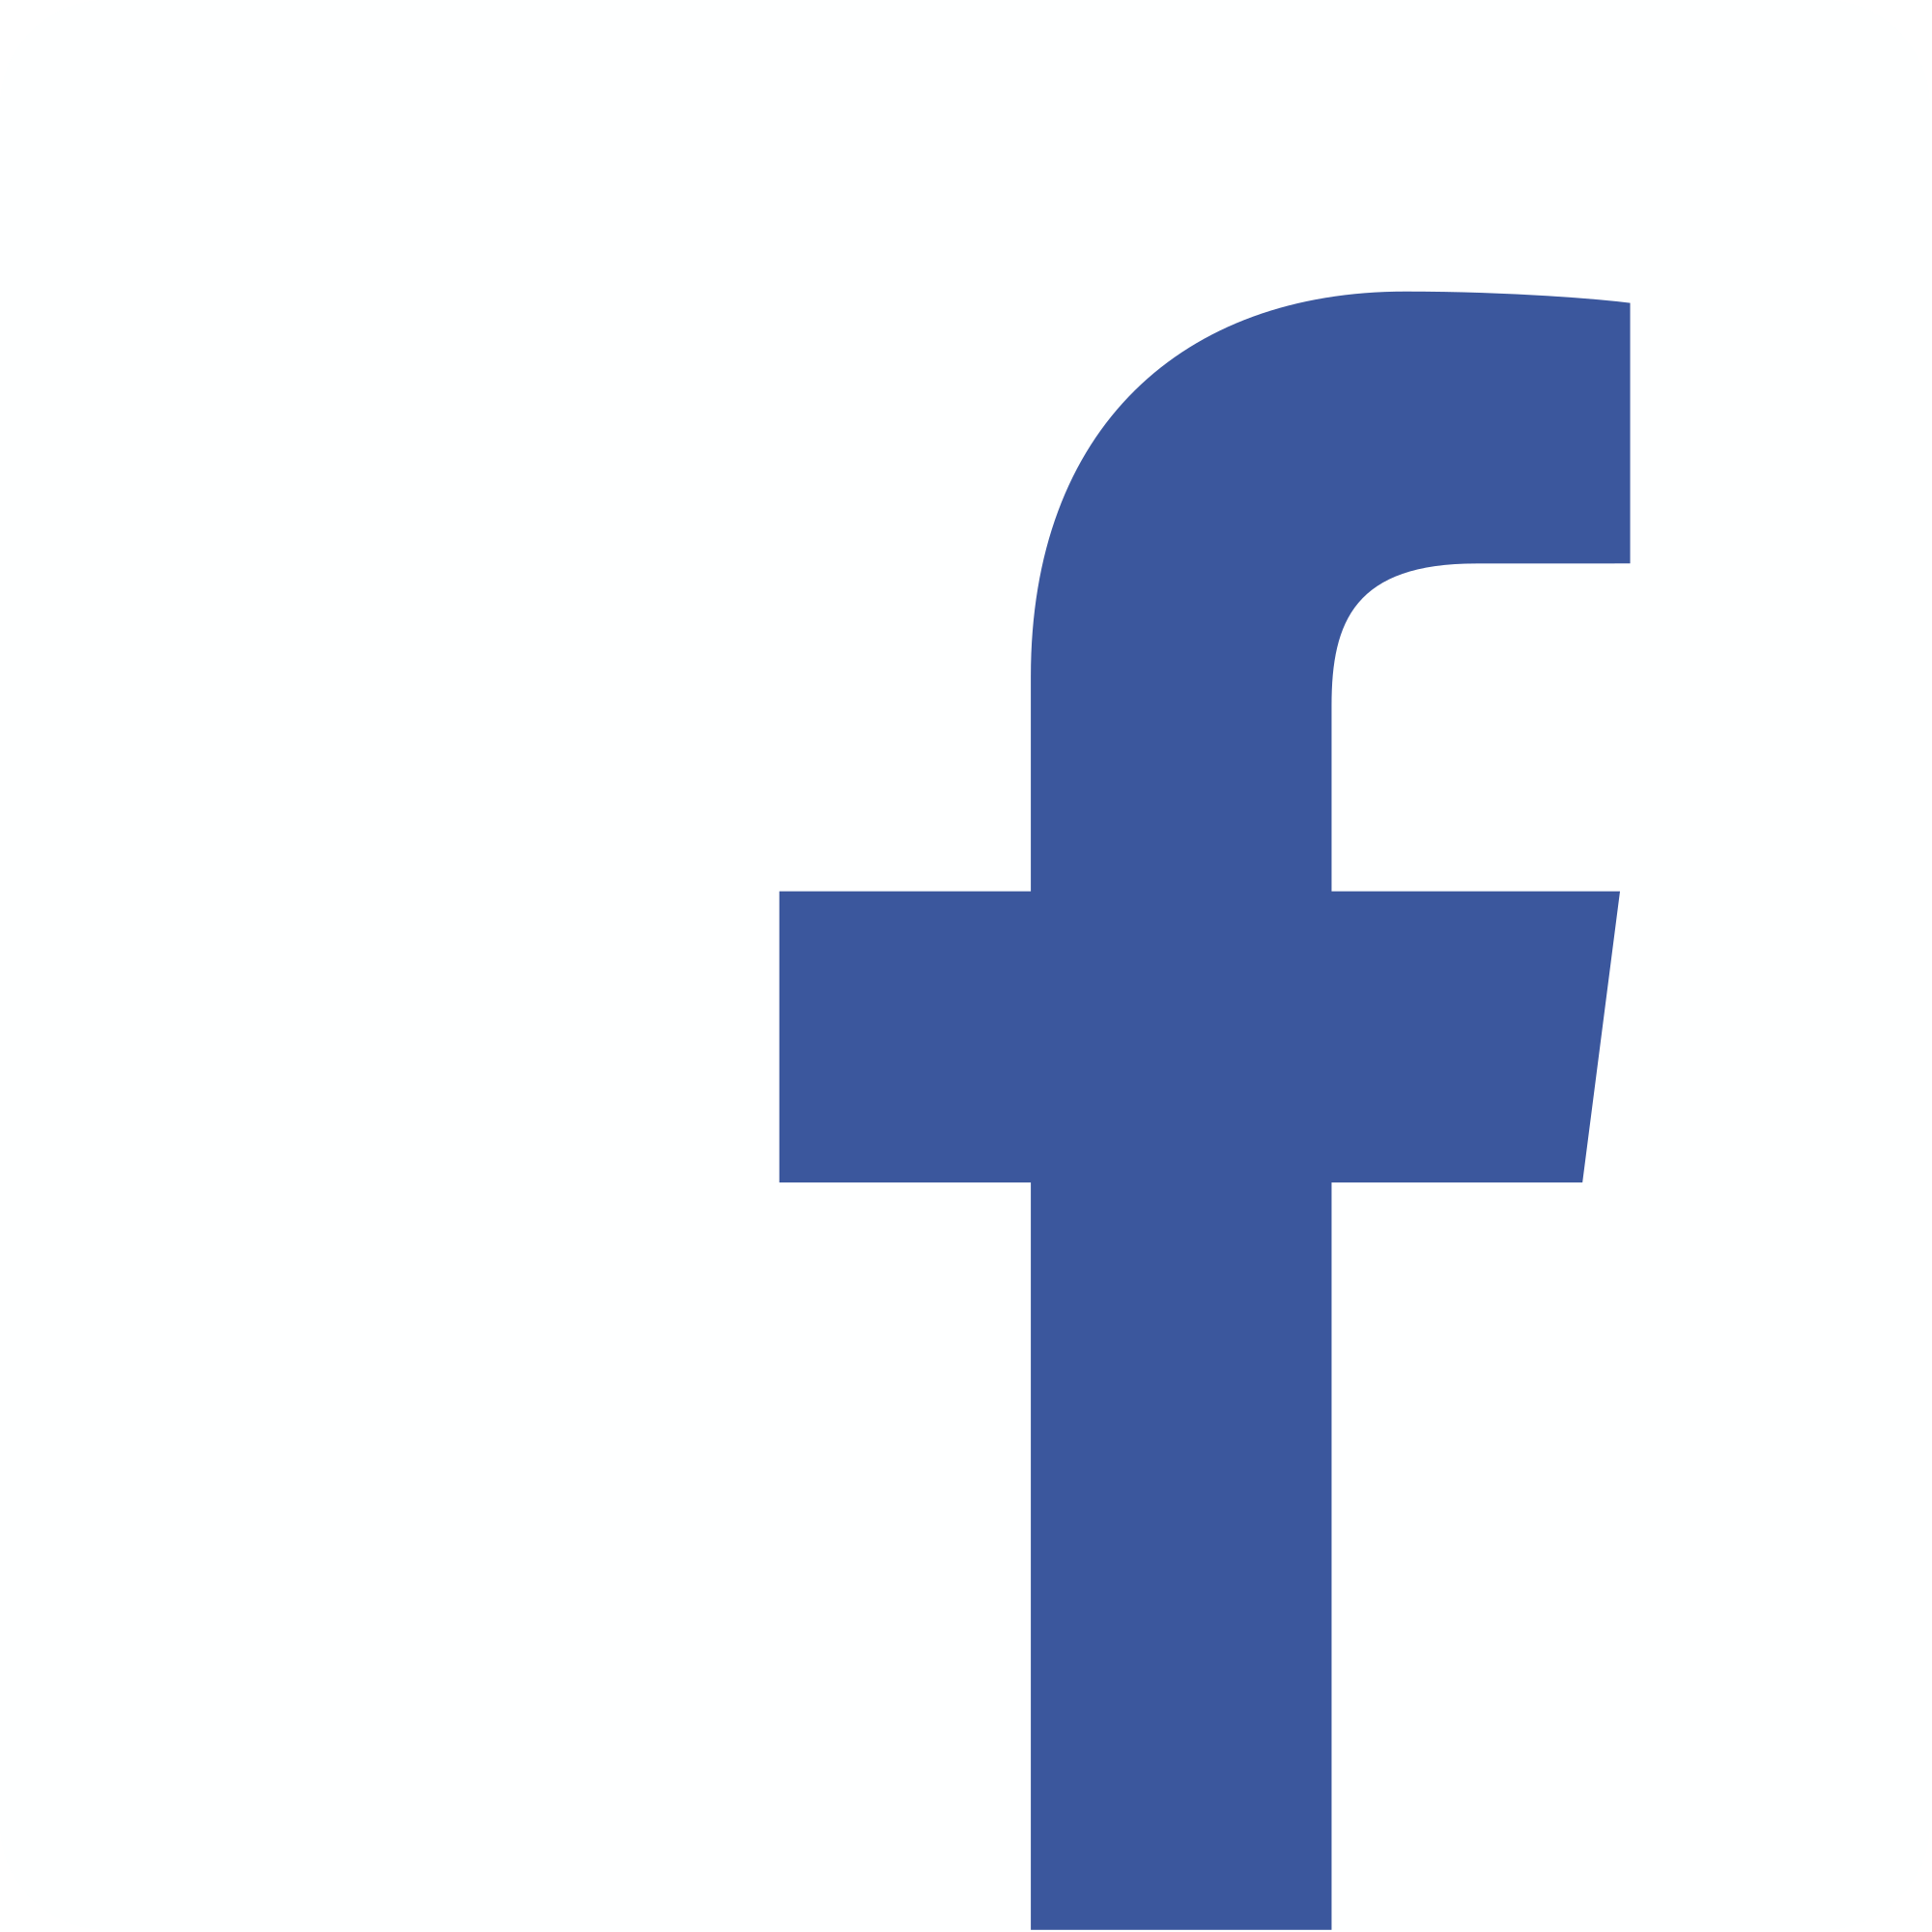 Facebook F Png (97+ images in Collection) Page 1.